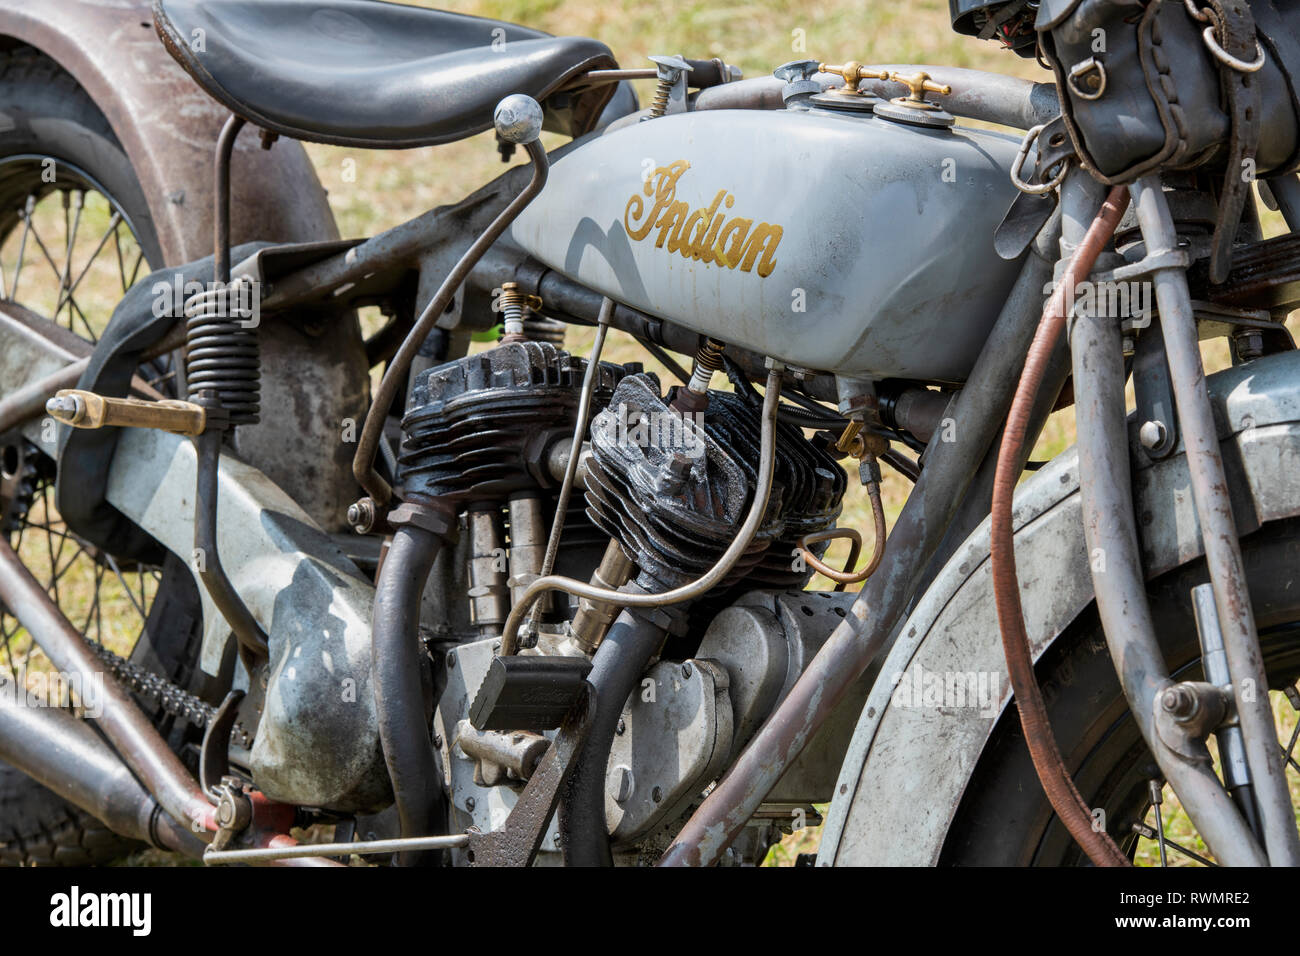 1928 Indian 101 Scout motorcycle. Classic American motorcycle - Stock Image